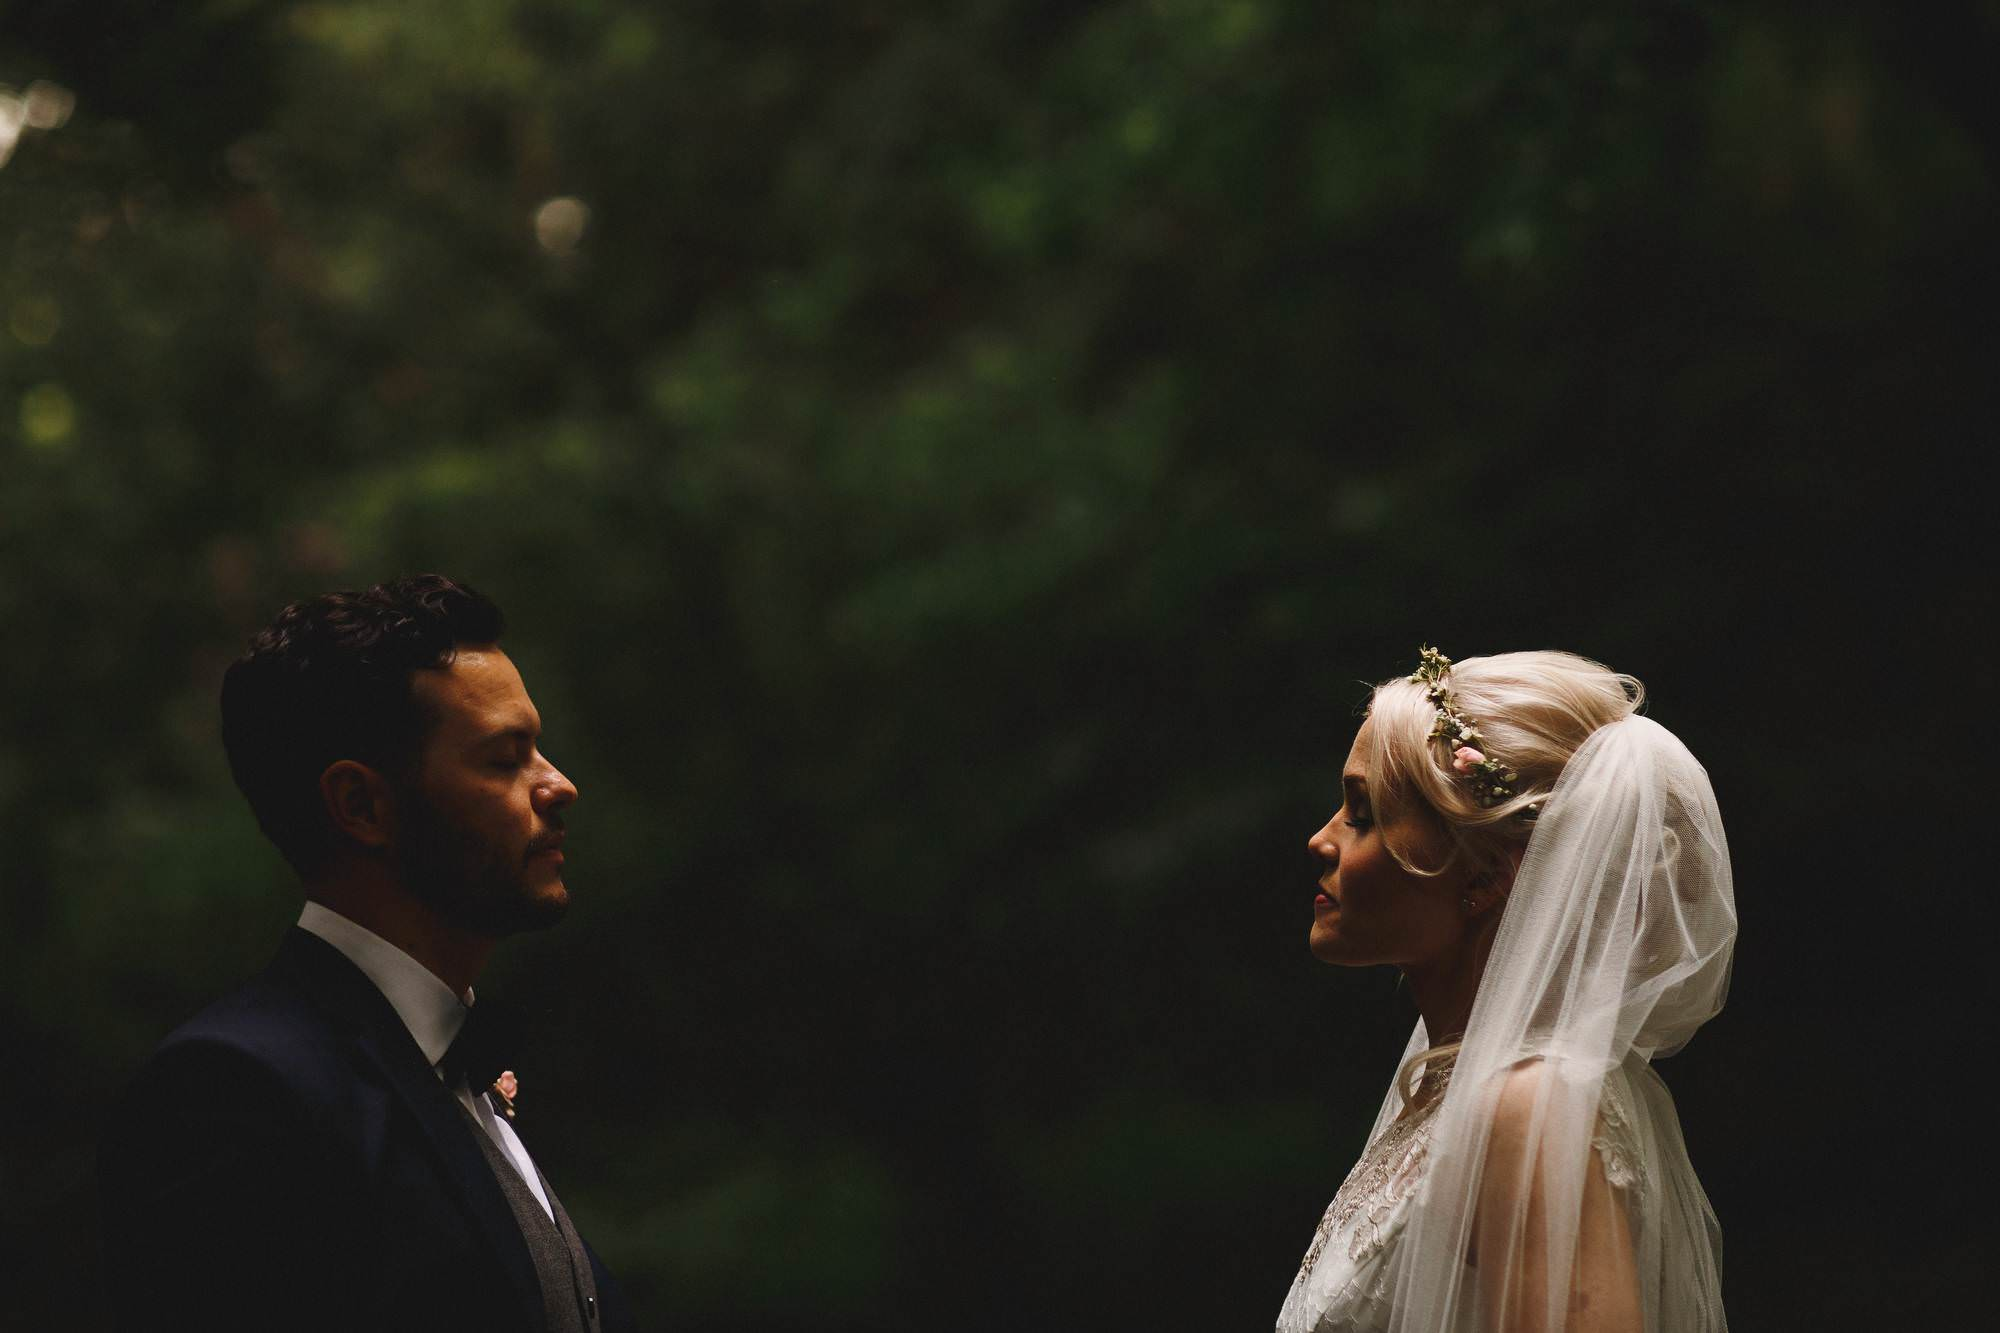 Unique wedding photography by ARJ Photography